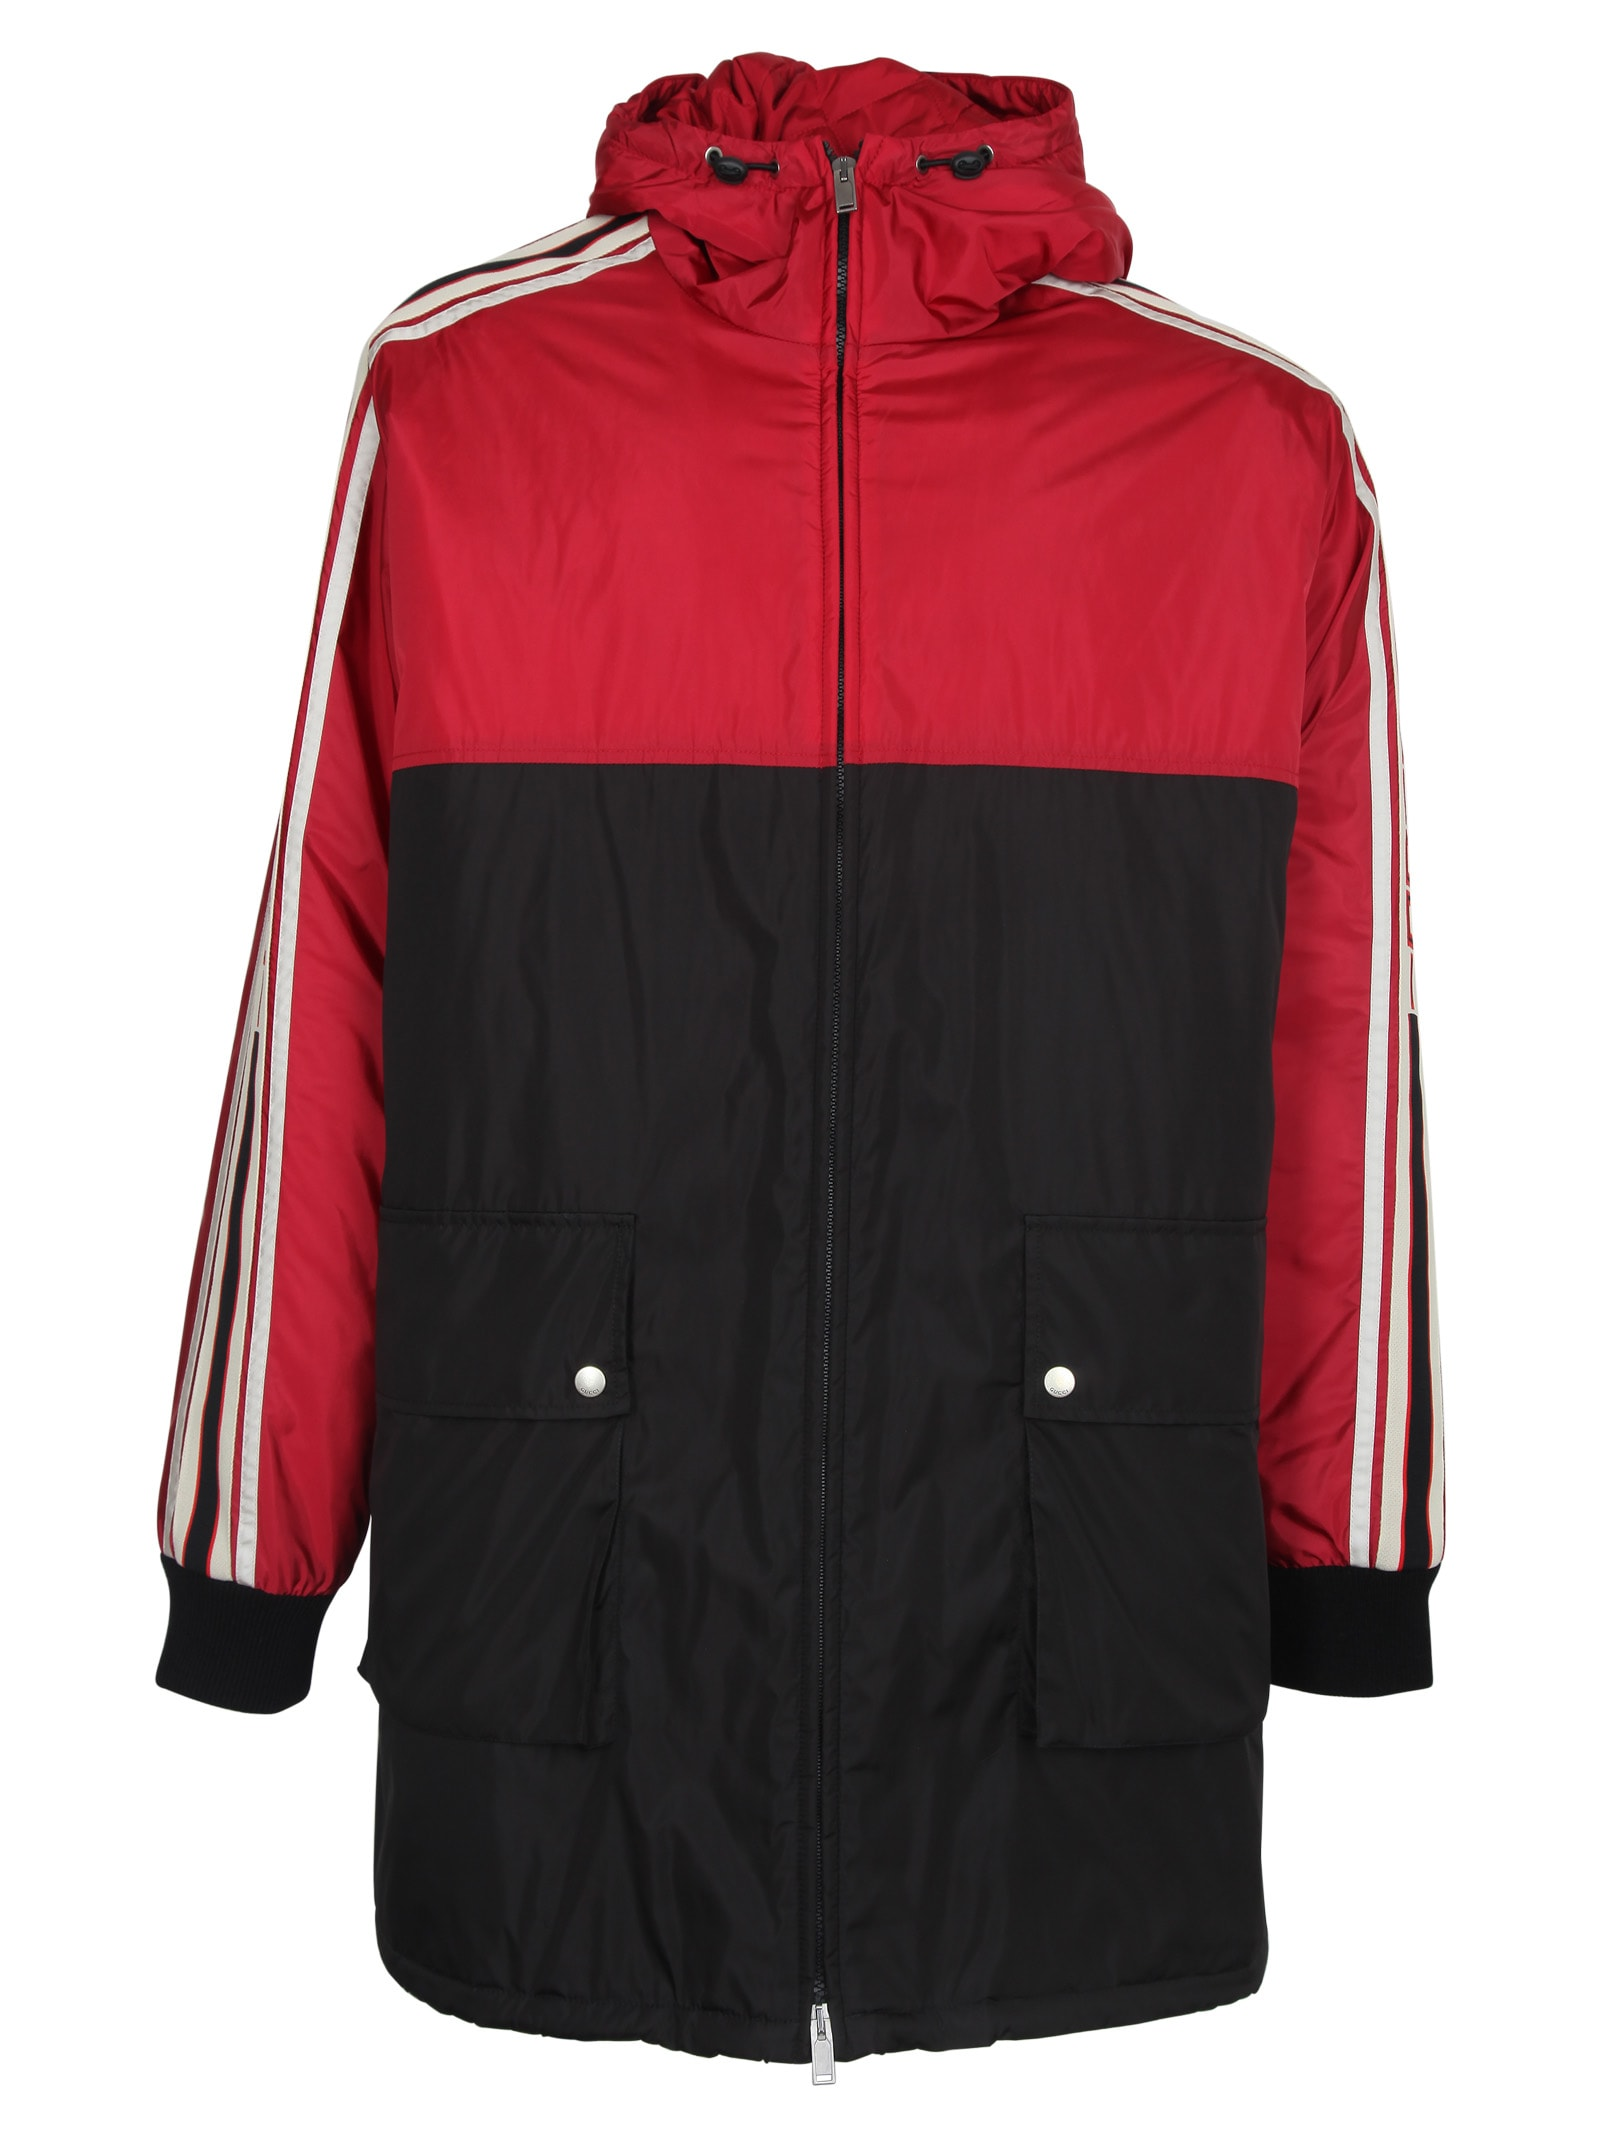 eb8fafcbd gucci parkas coats & jackets for men - Buy best men's gucci parkas coats &  jackets on Cools.com Shop